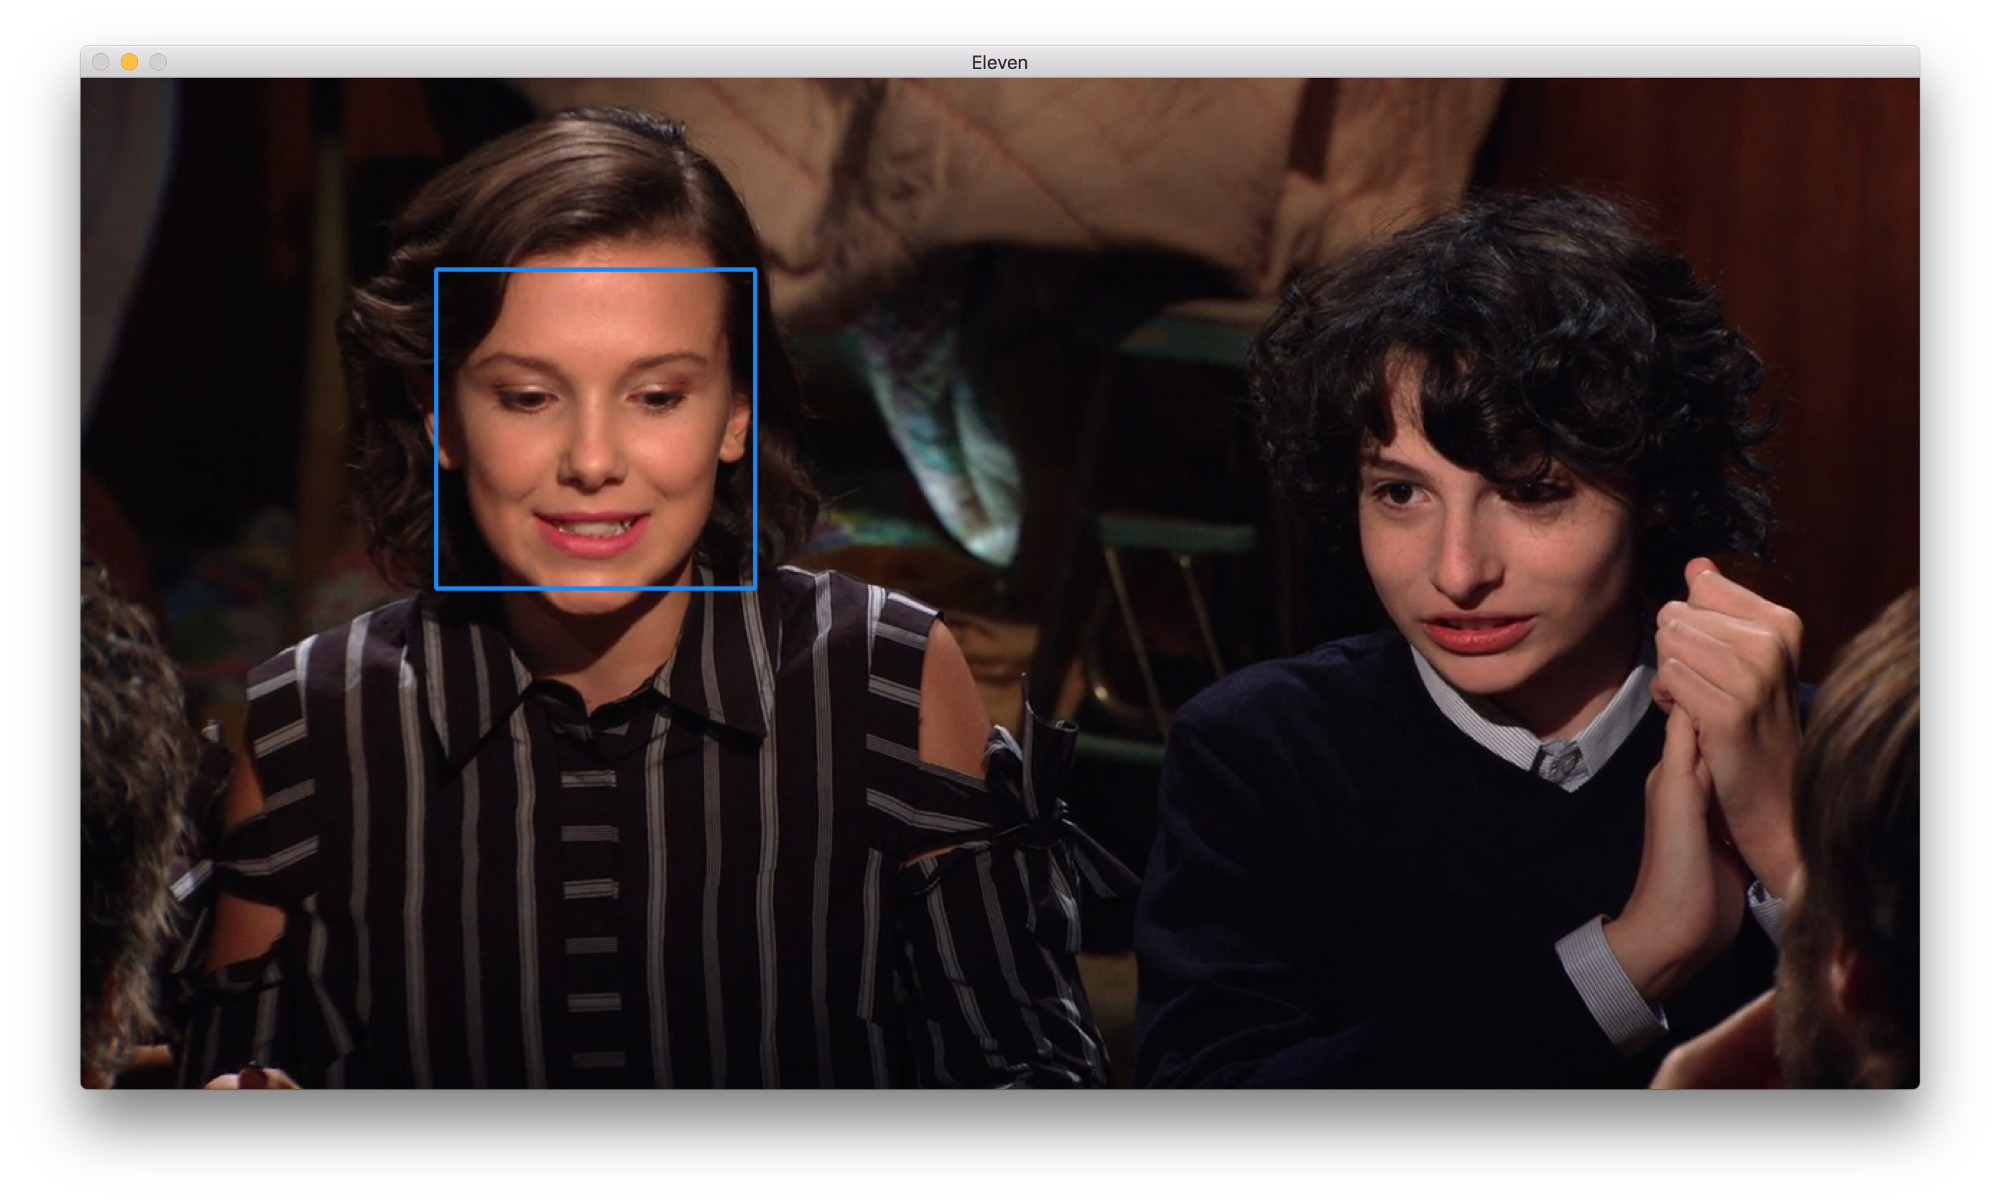 Face detection & recognition with Javascript - Beautiful